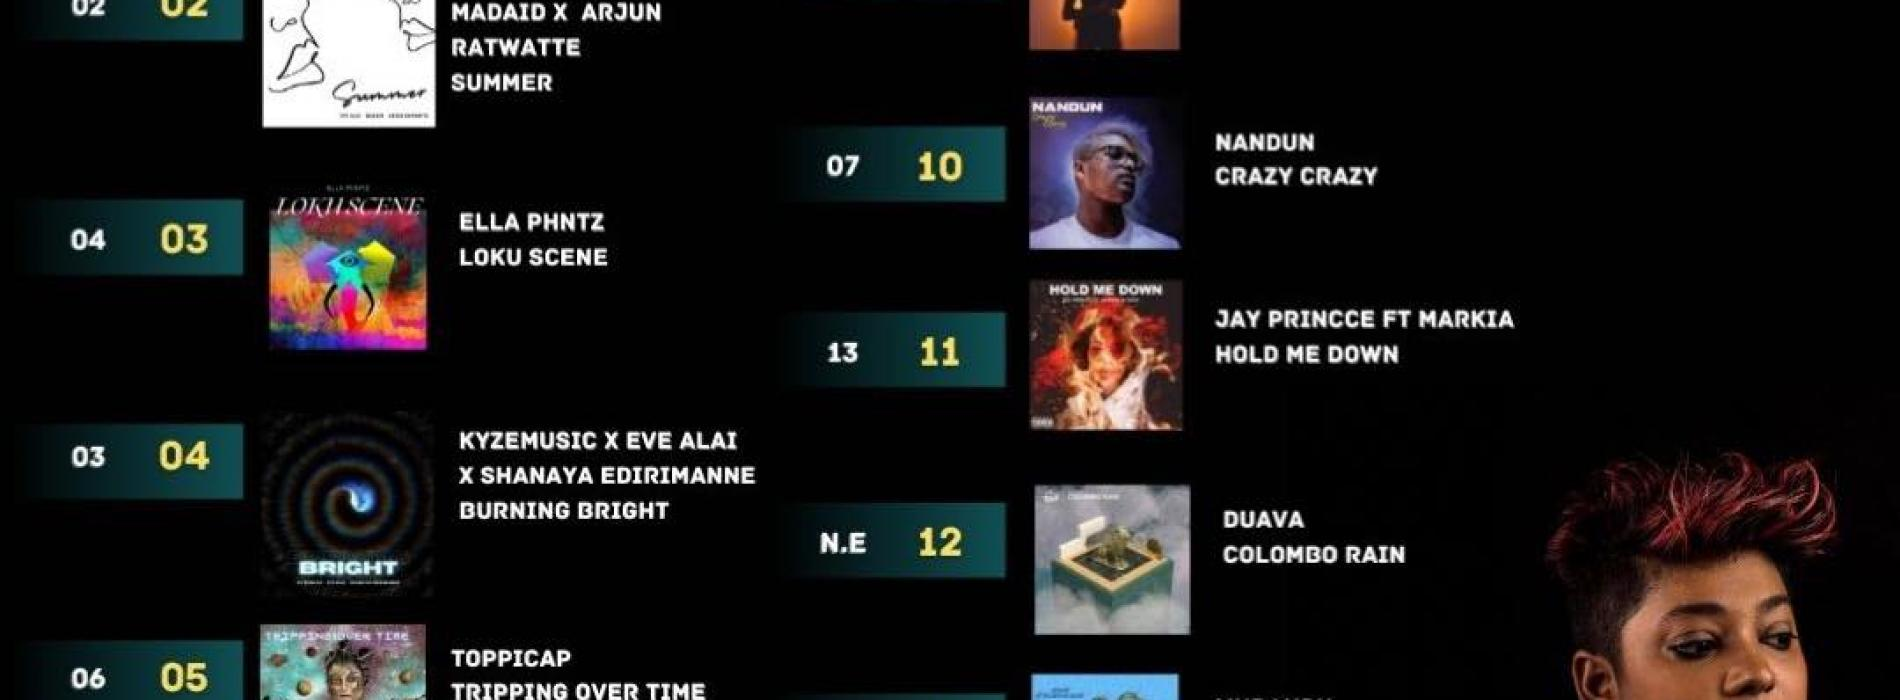 News : 'Sunscreen' Still At Number 1 On The YES Home Grown Top 15!